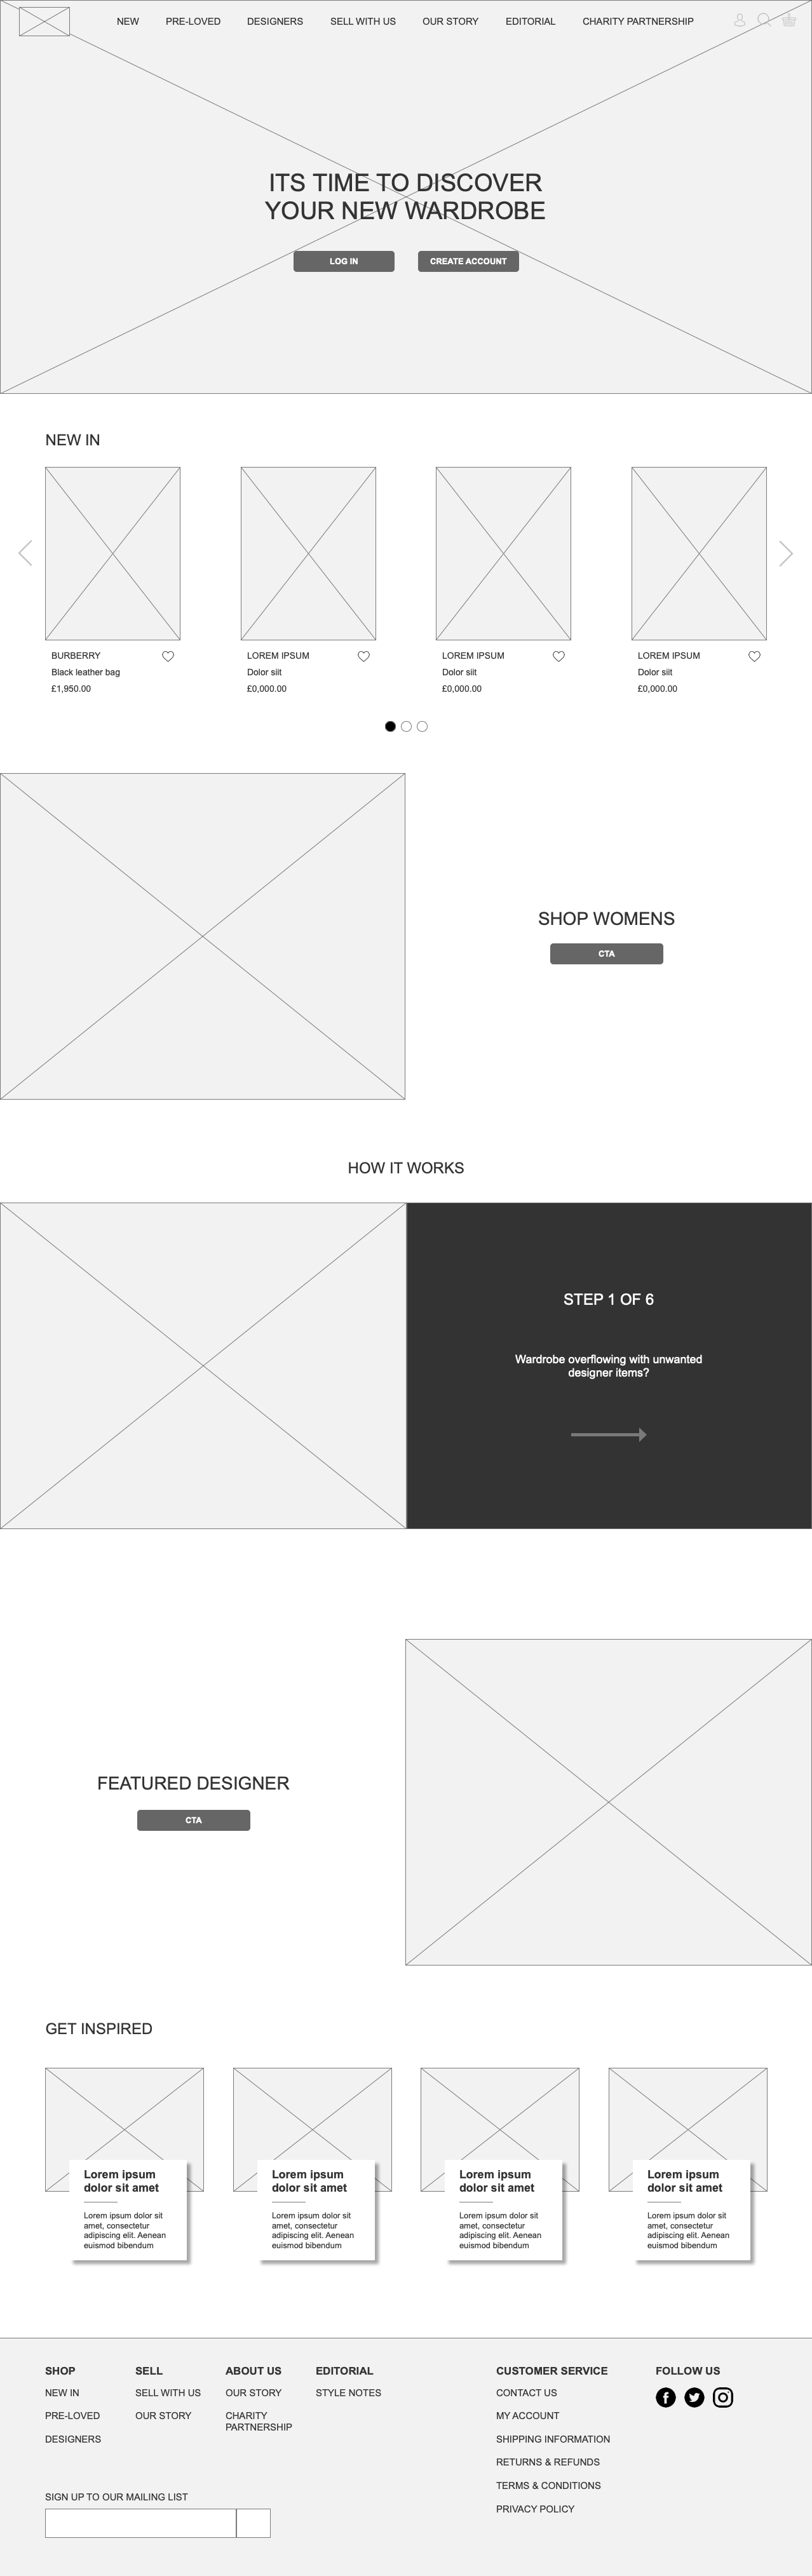 homepage wireframe.png